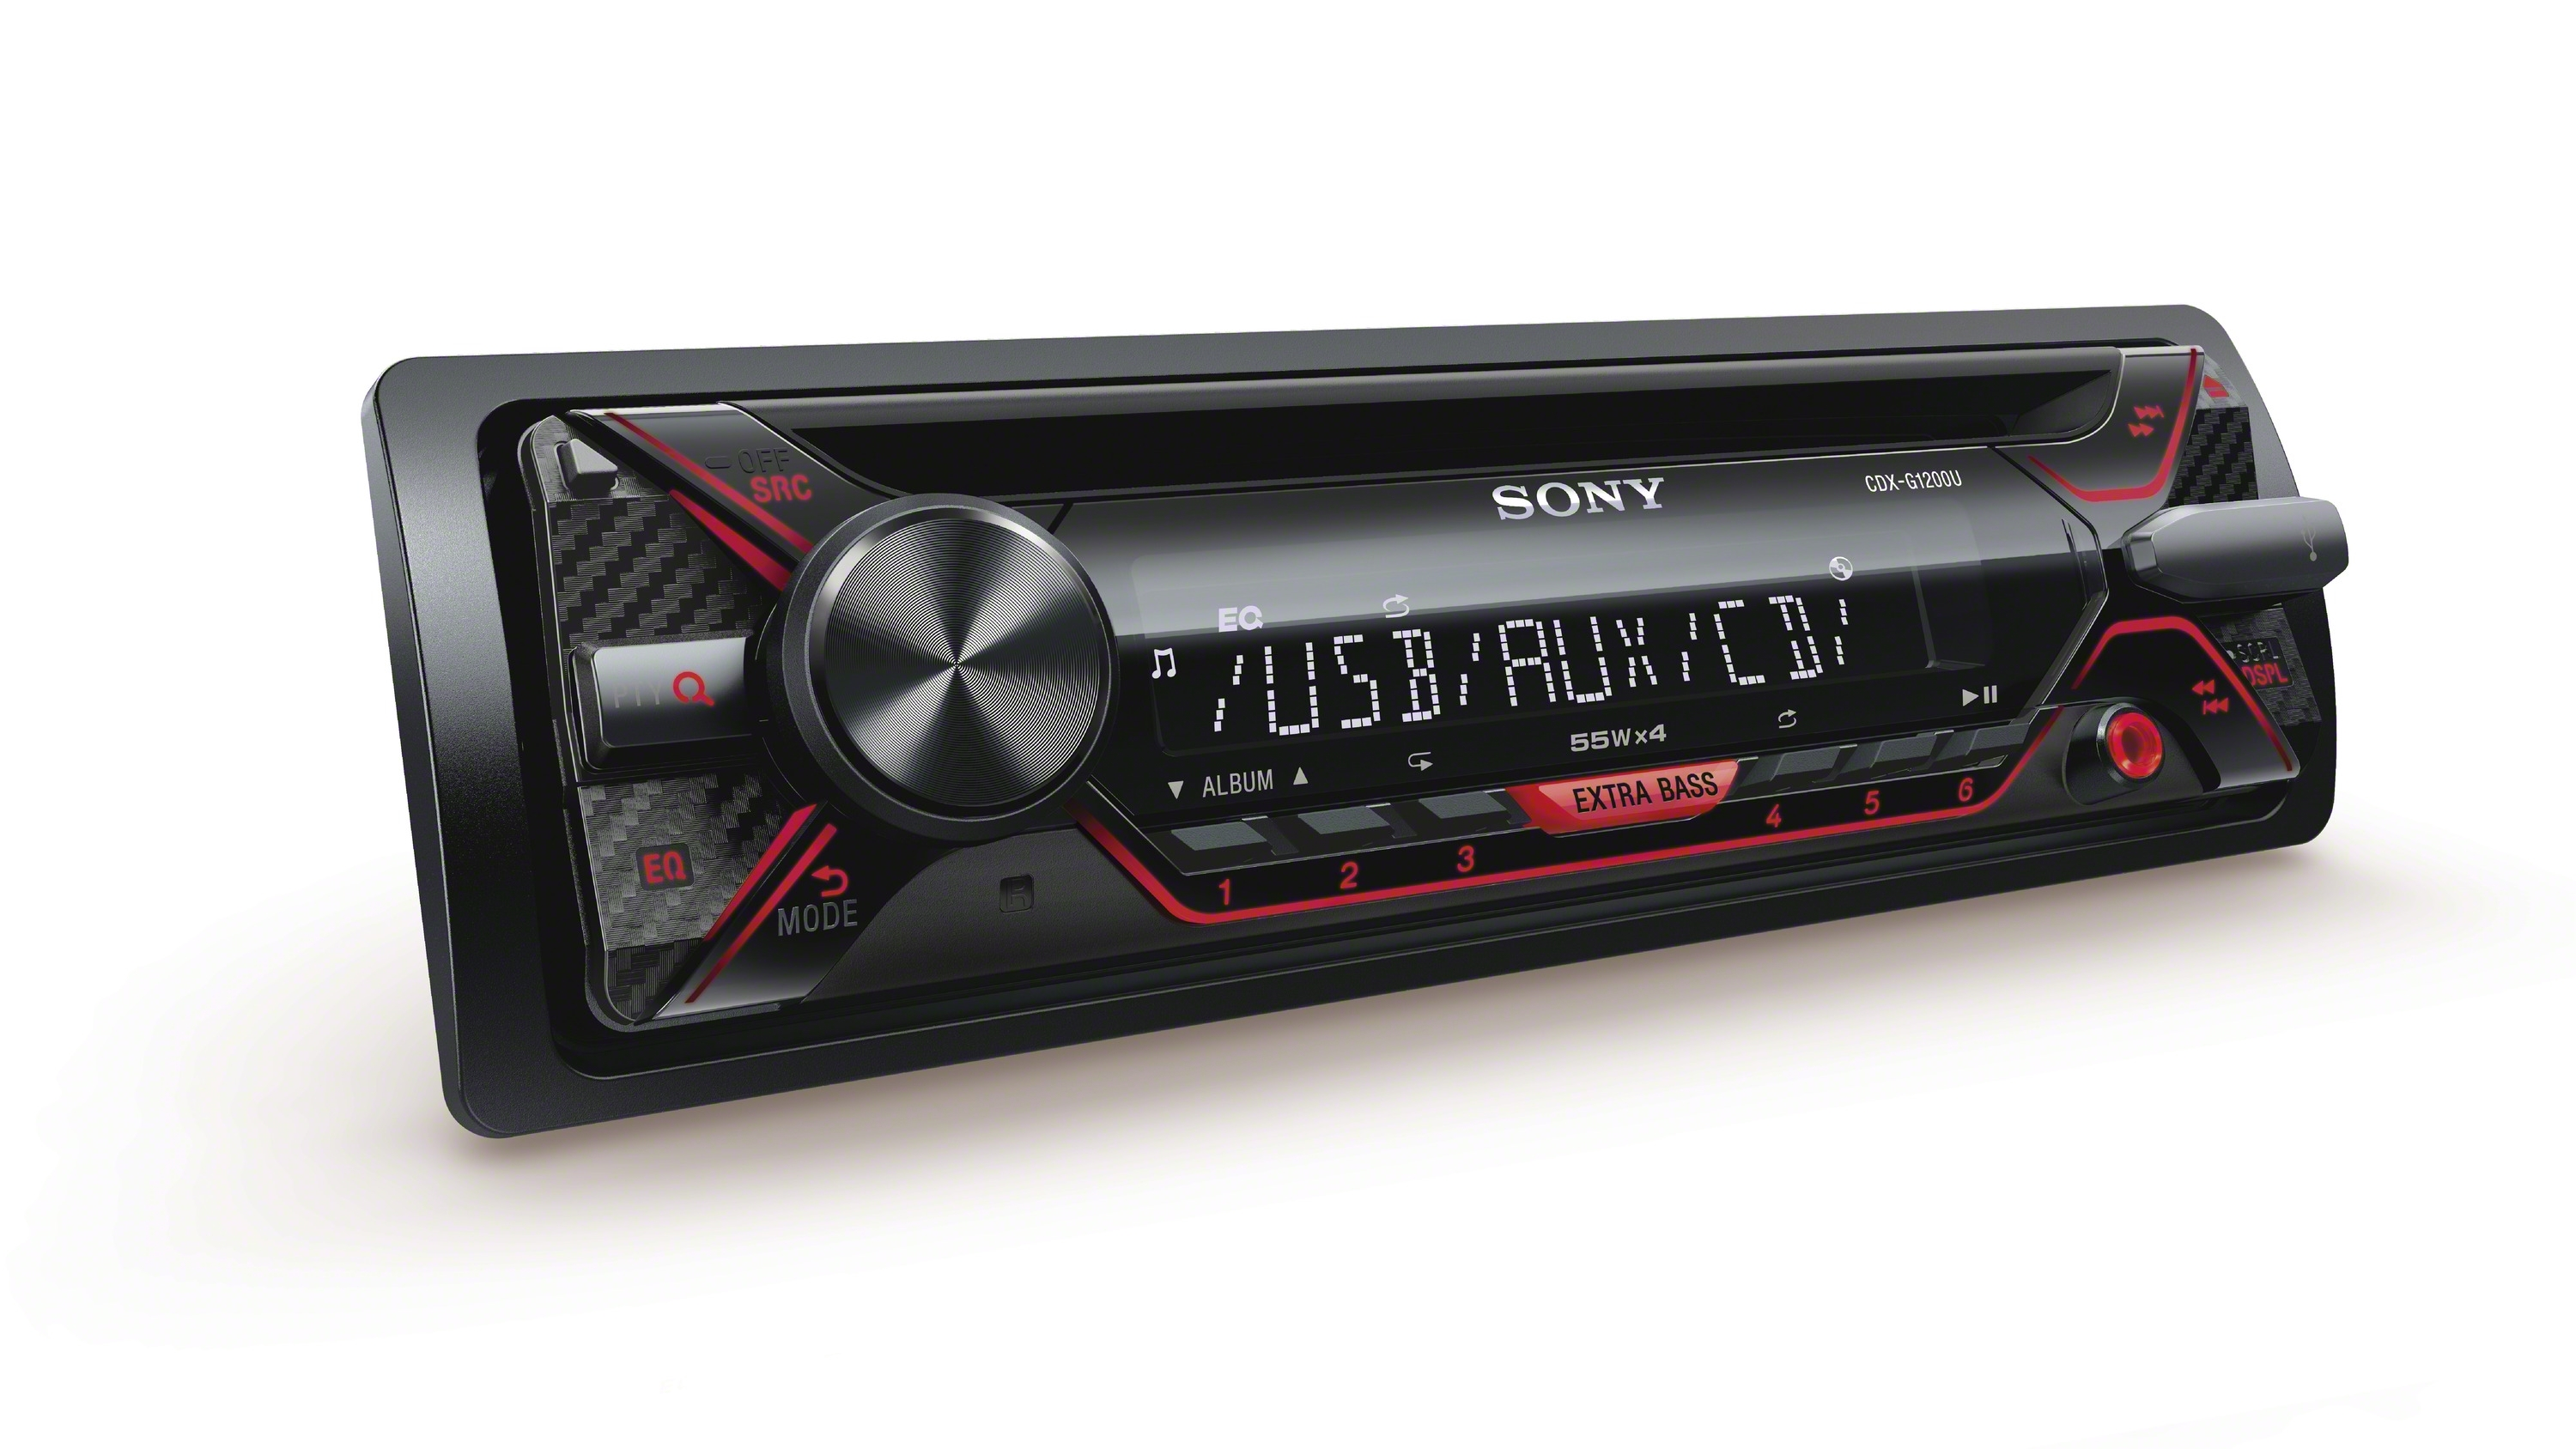 sony car radio stereo cd player usb android aux flac mp3. Black Bedroom Furniture Sets. Home Design Ideas